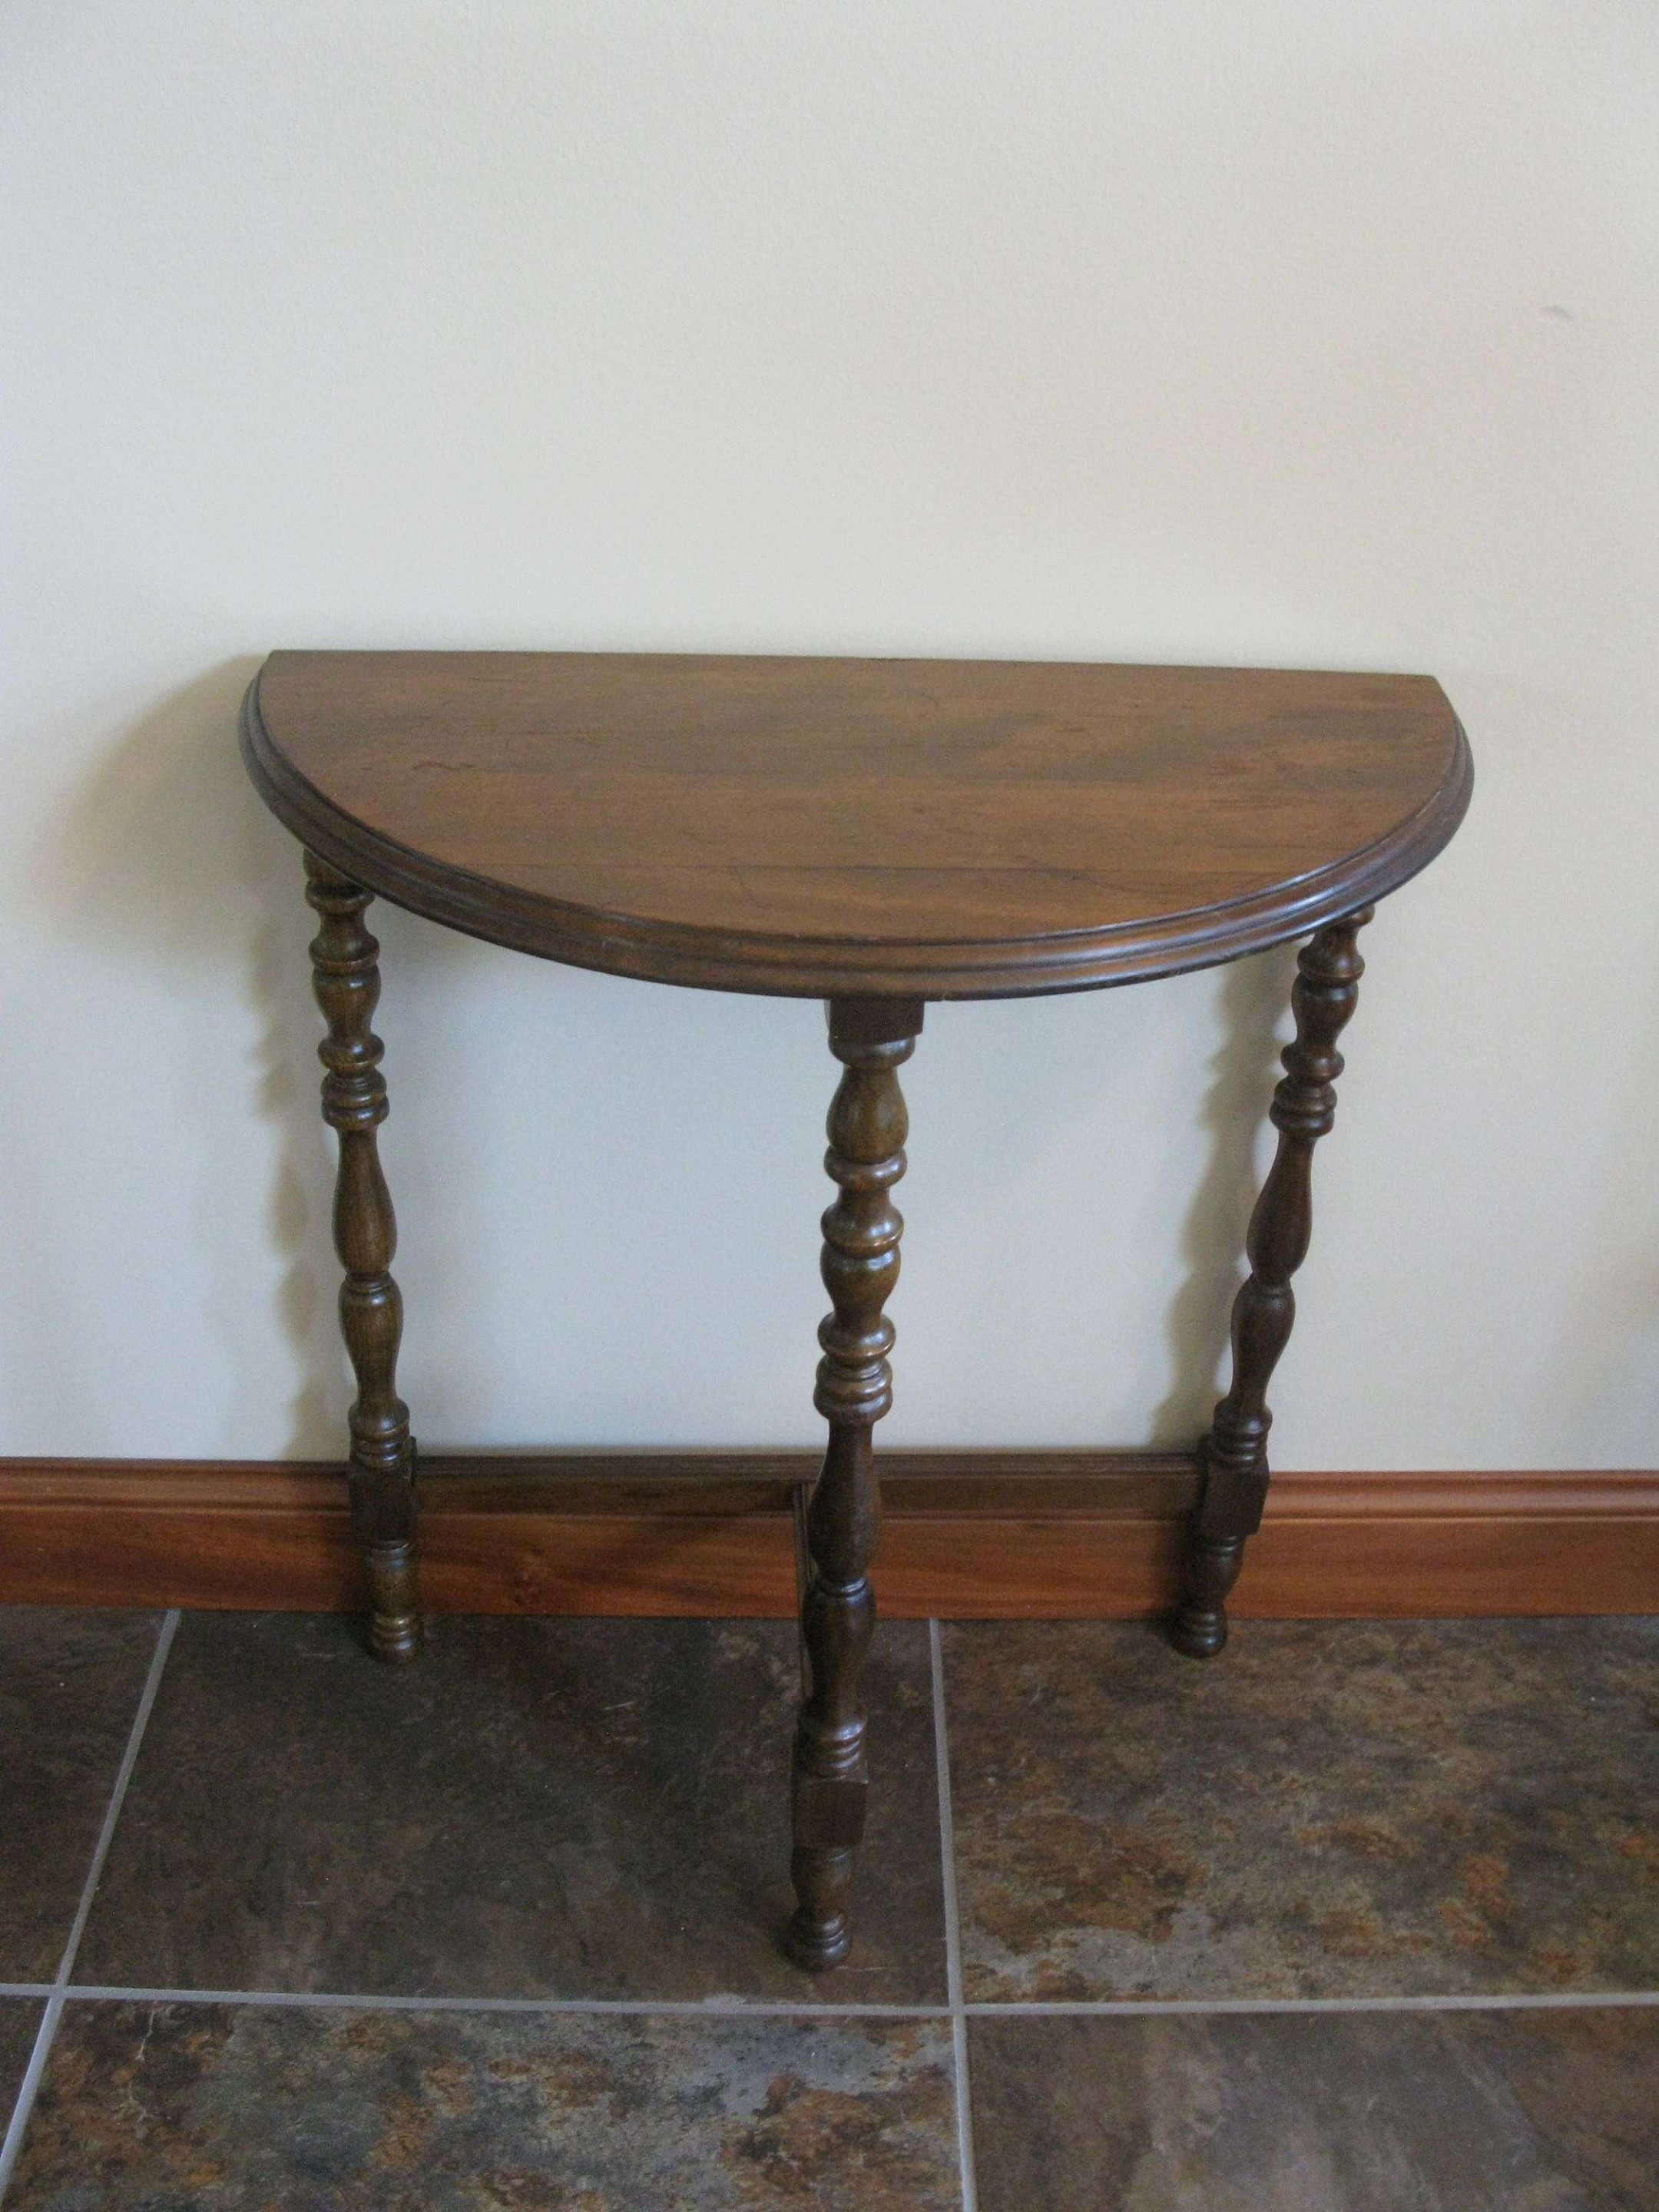 classy farmhouse bedside table coffee tables beautiful wood accent inspirational decor elegant round metal idea pleasant decorative knotty pine bedroom furniture west elm